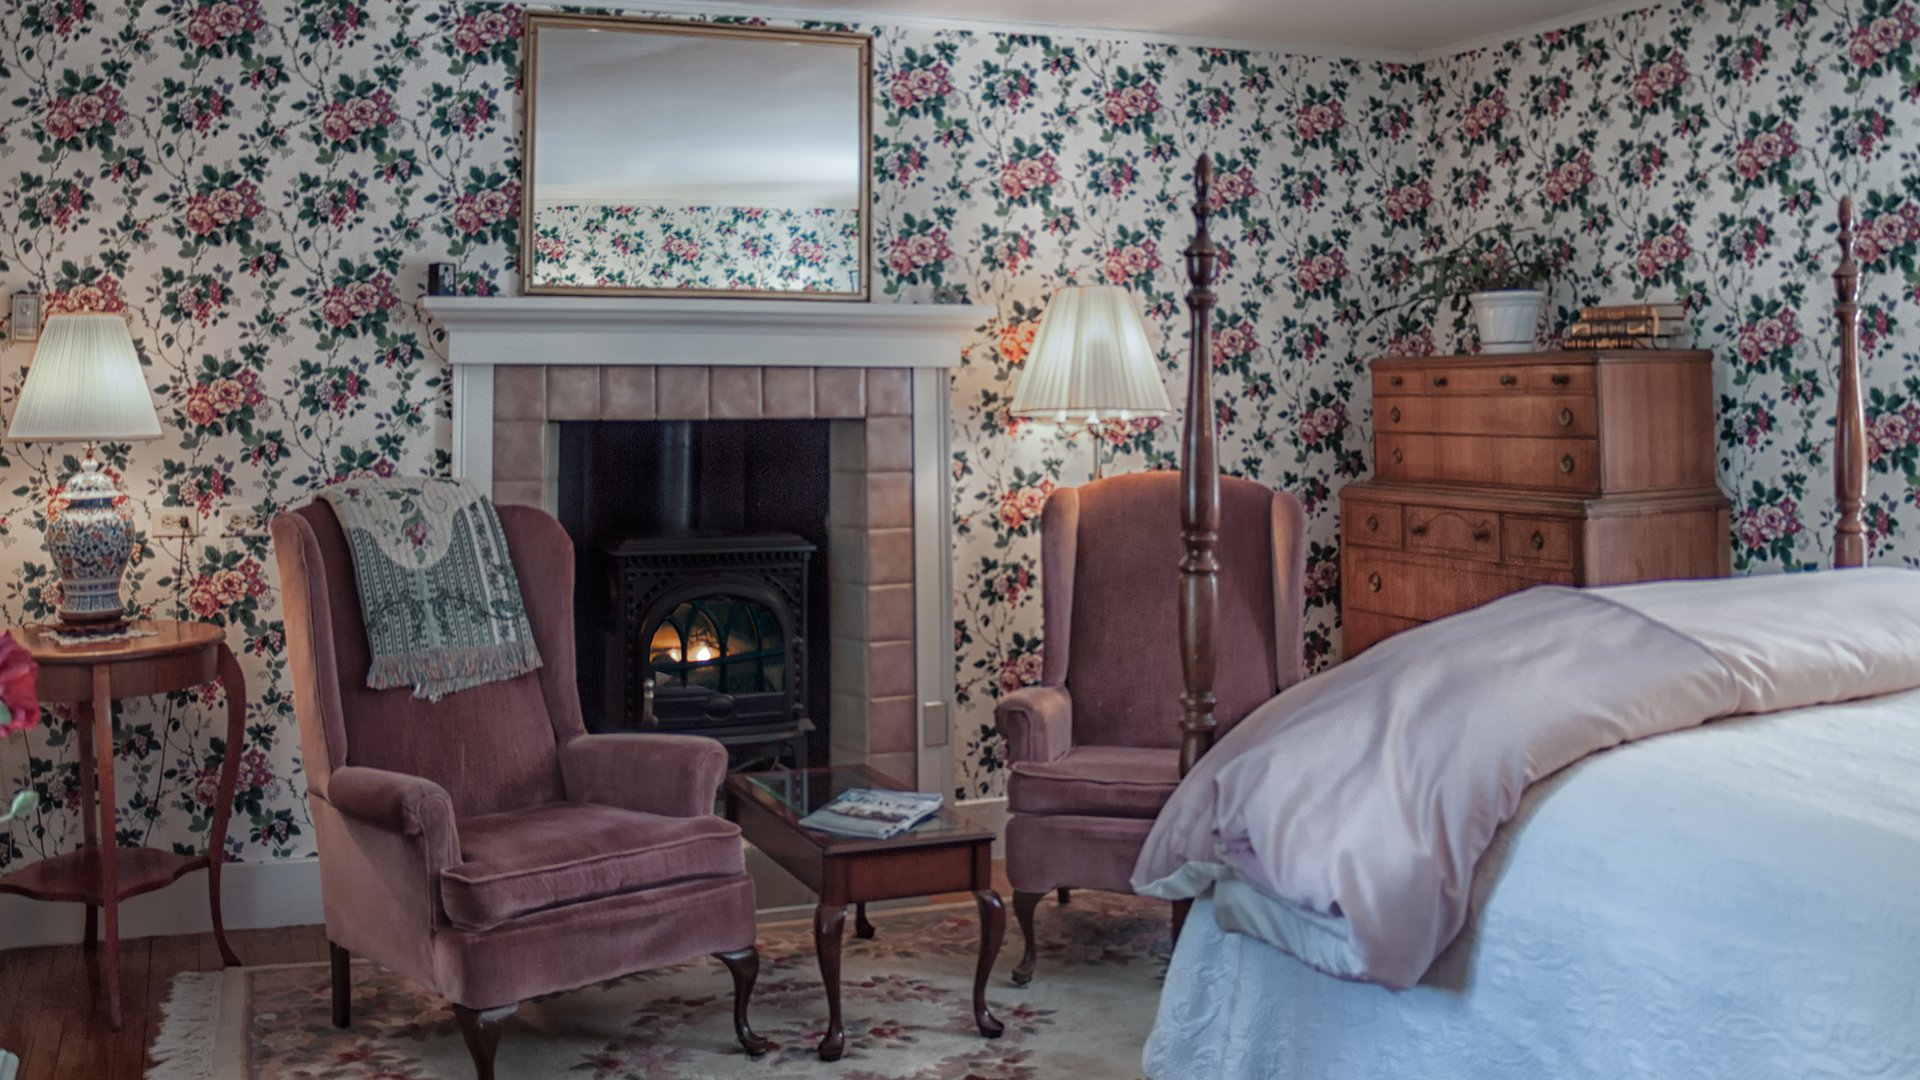 Victorian Room in Inns at Blackberry Common - warmed by gas fireplace.